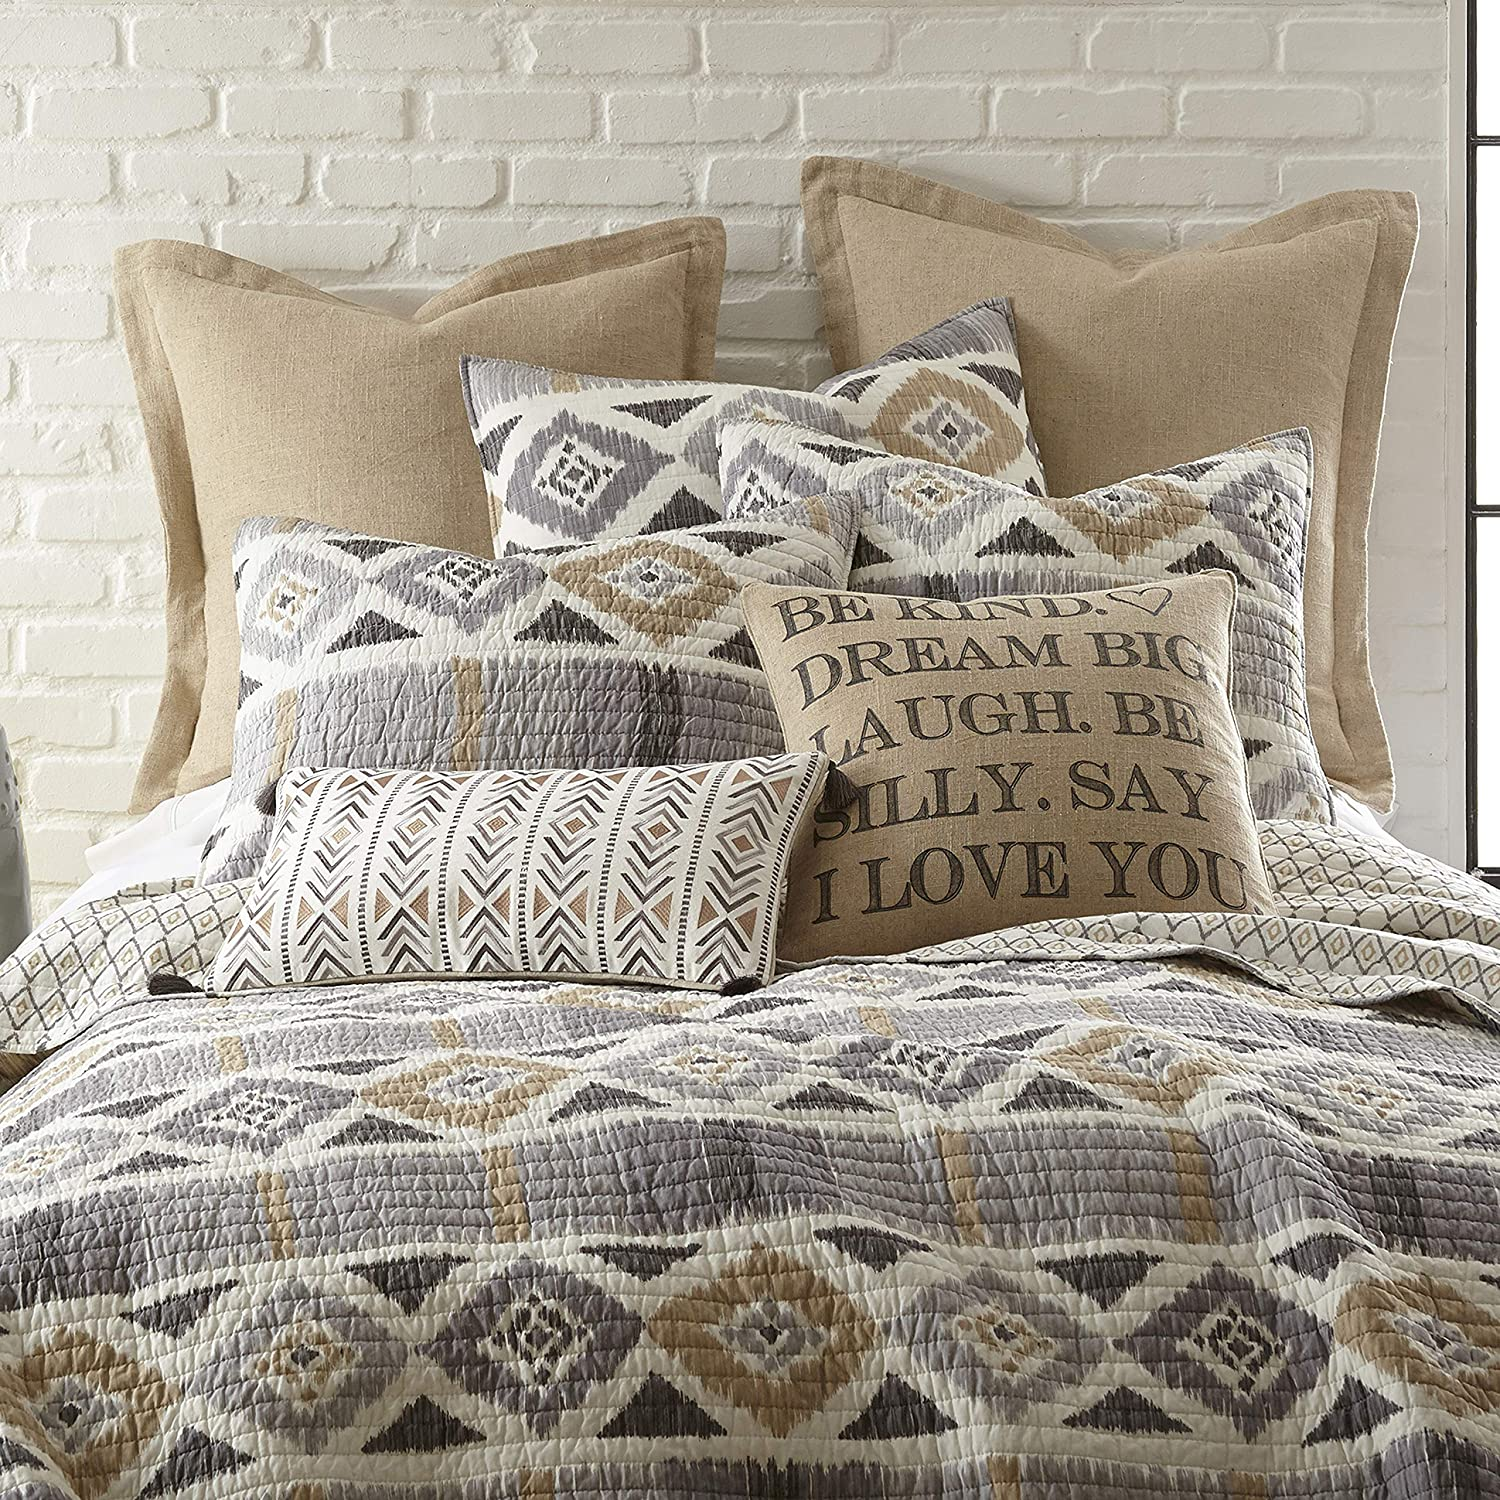 Levtex Home Santa Fe Quilt Ikat Pattern In Soft Grey Cream And Tan Twin Quilt Size 68 X 86in Reversible Pattern Cotton Shams Sold Separately Walmart Com Walmart Com